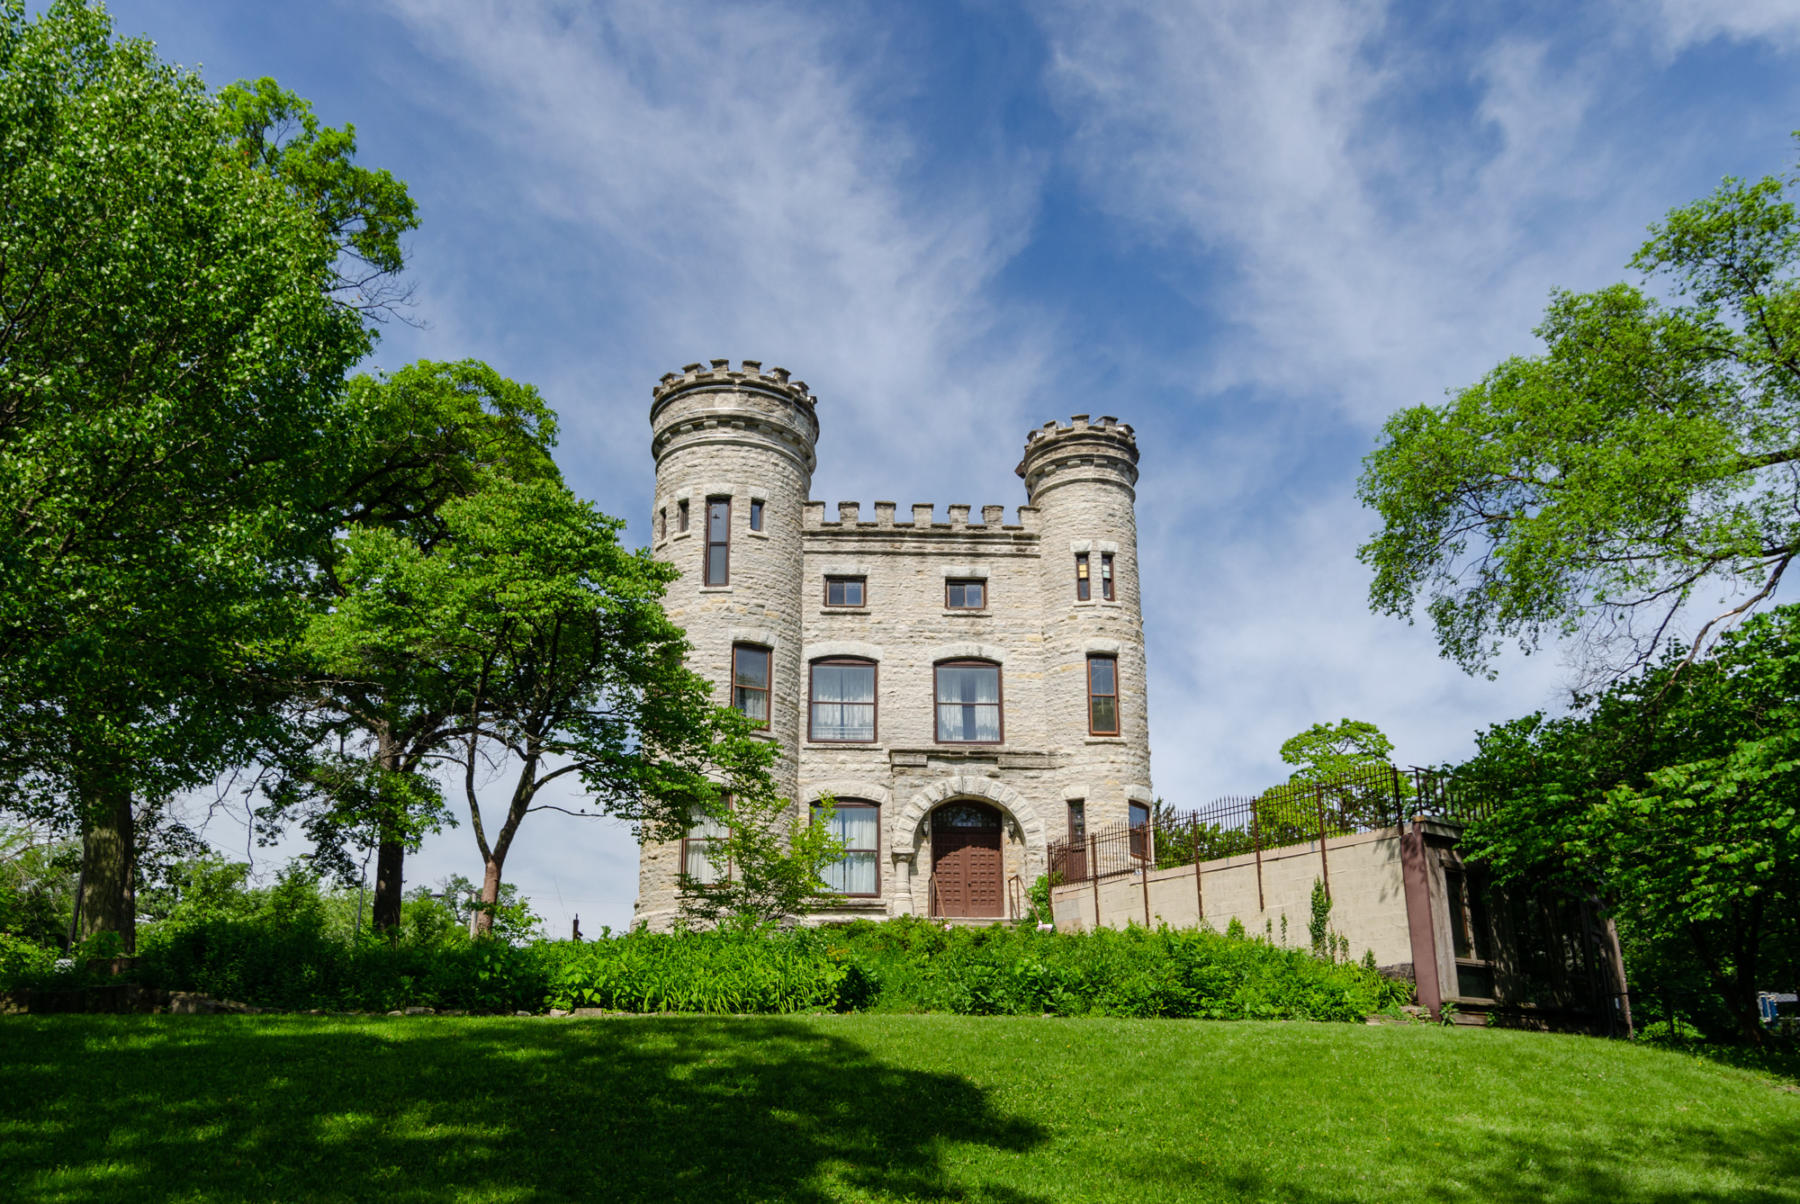 The Givins Castle in Chicago's Beverly neighborhood